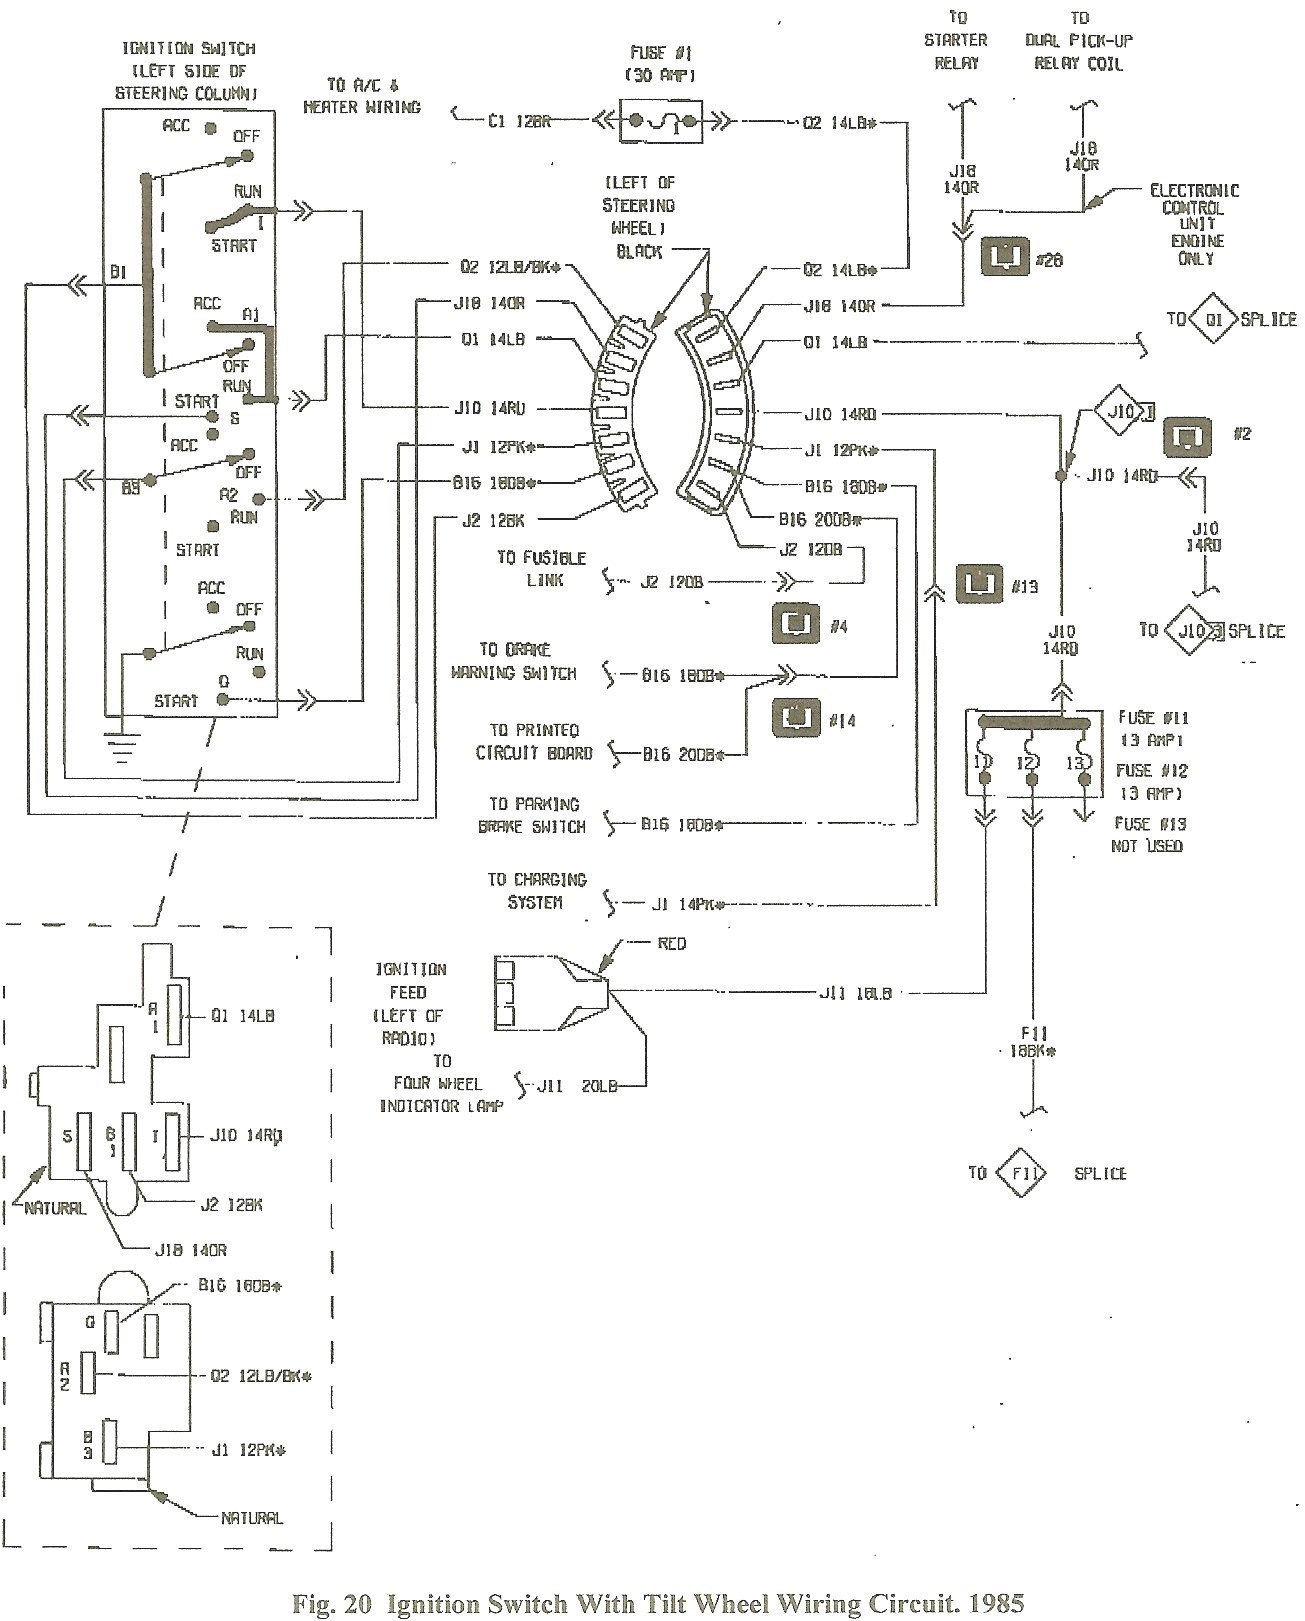 Pcm Wiring Diagram 2004 Dodge Ram Get Free Image About Wiring